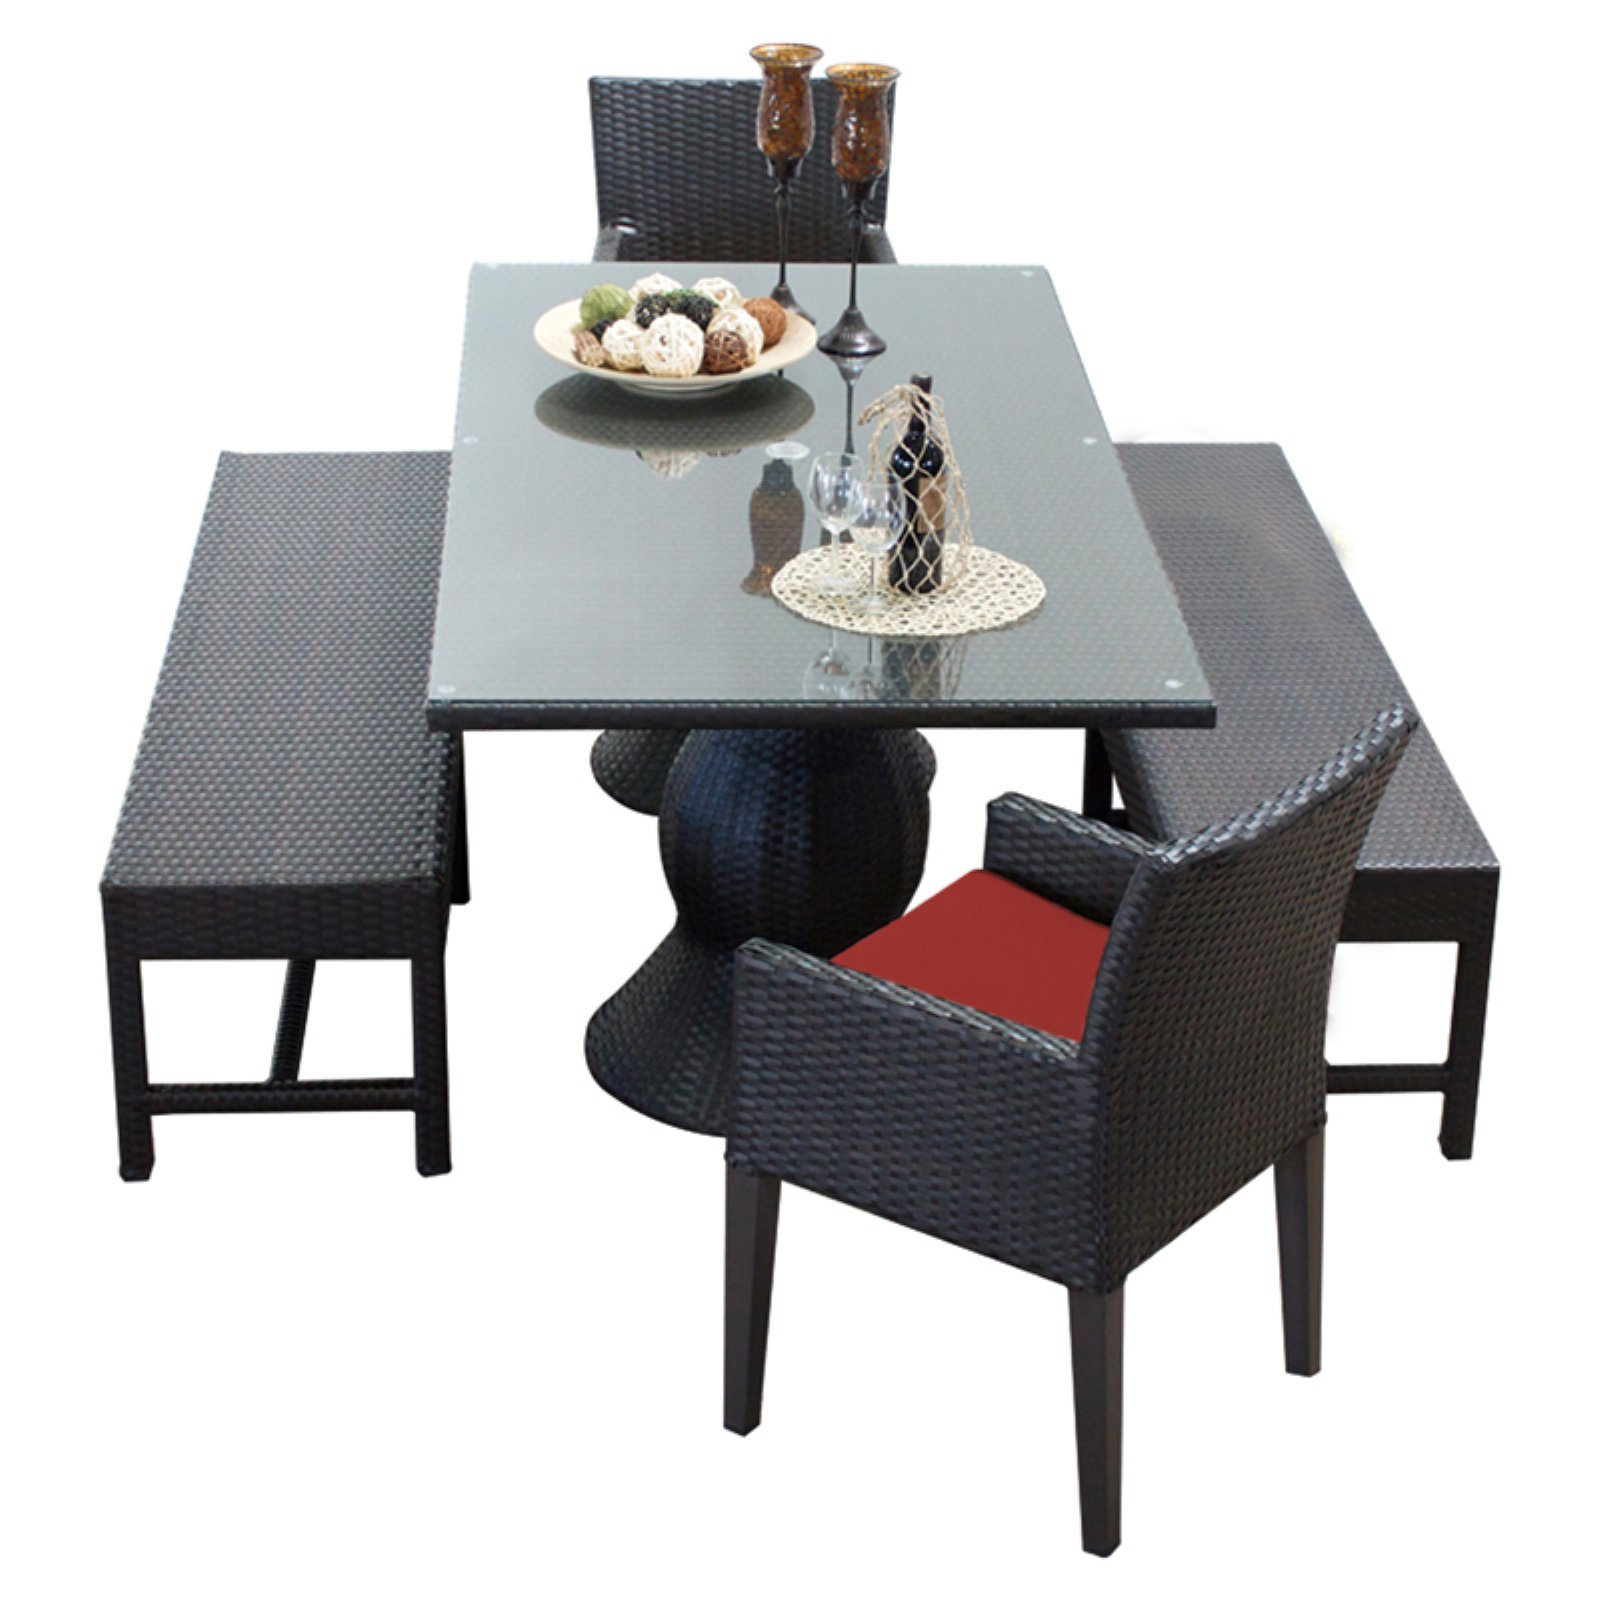 TK Classics Napa Wicker 5 Piece Rectangular Patio Dining Room Set with 4 Cushion Covers by TK Classics